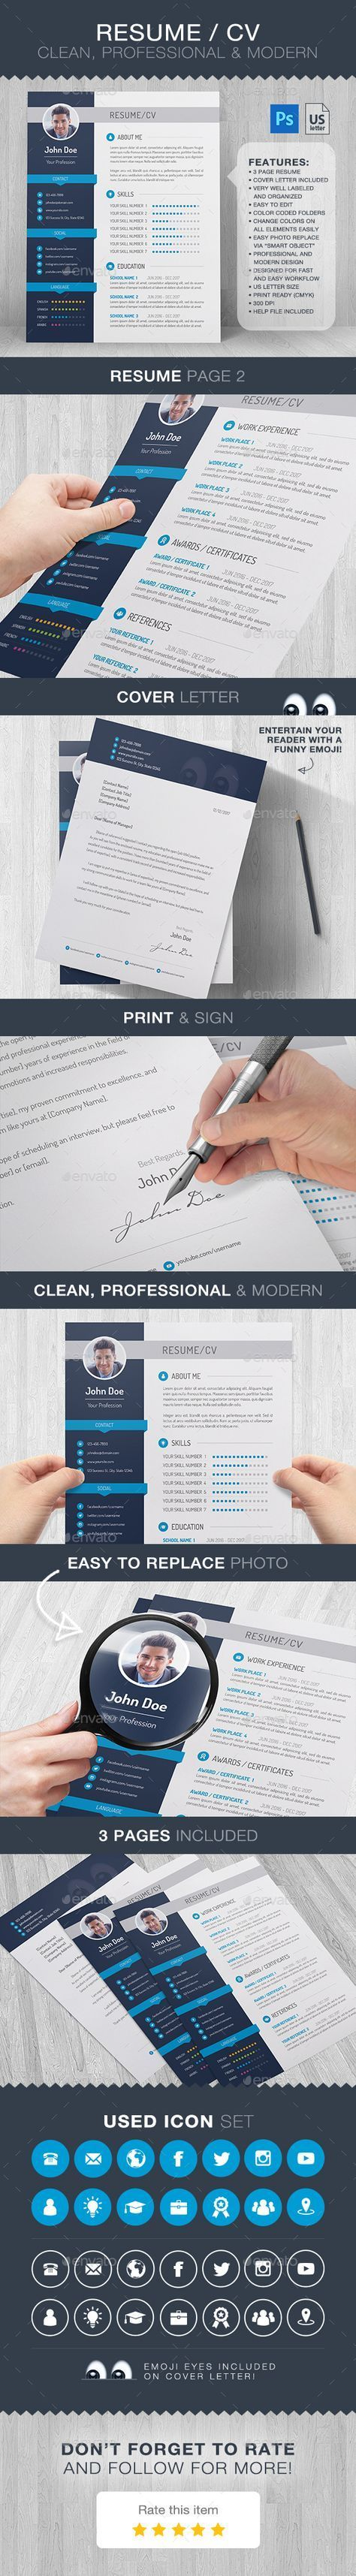 Resume Pdf Or Word Download%0A Resume   Resumes  Stationery Download here  https   graphicriver net